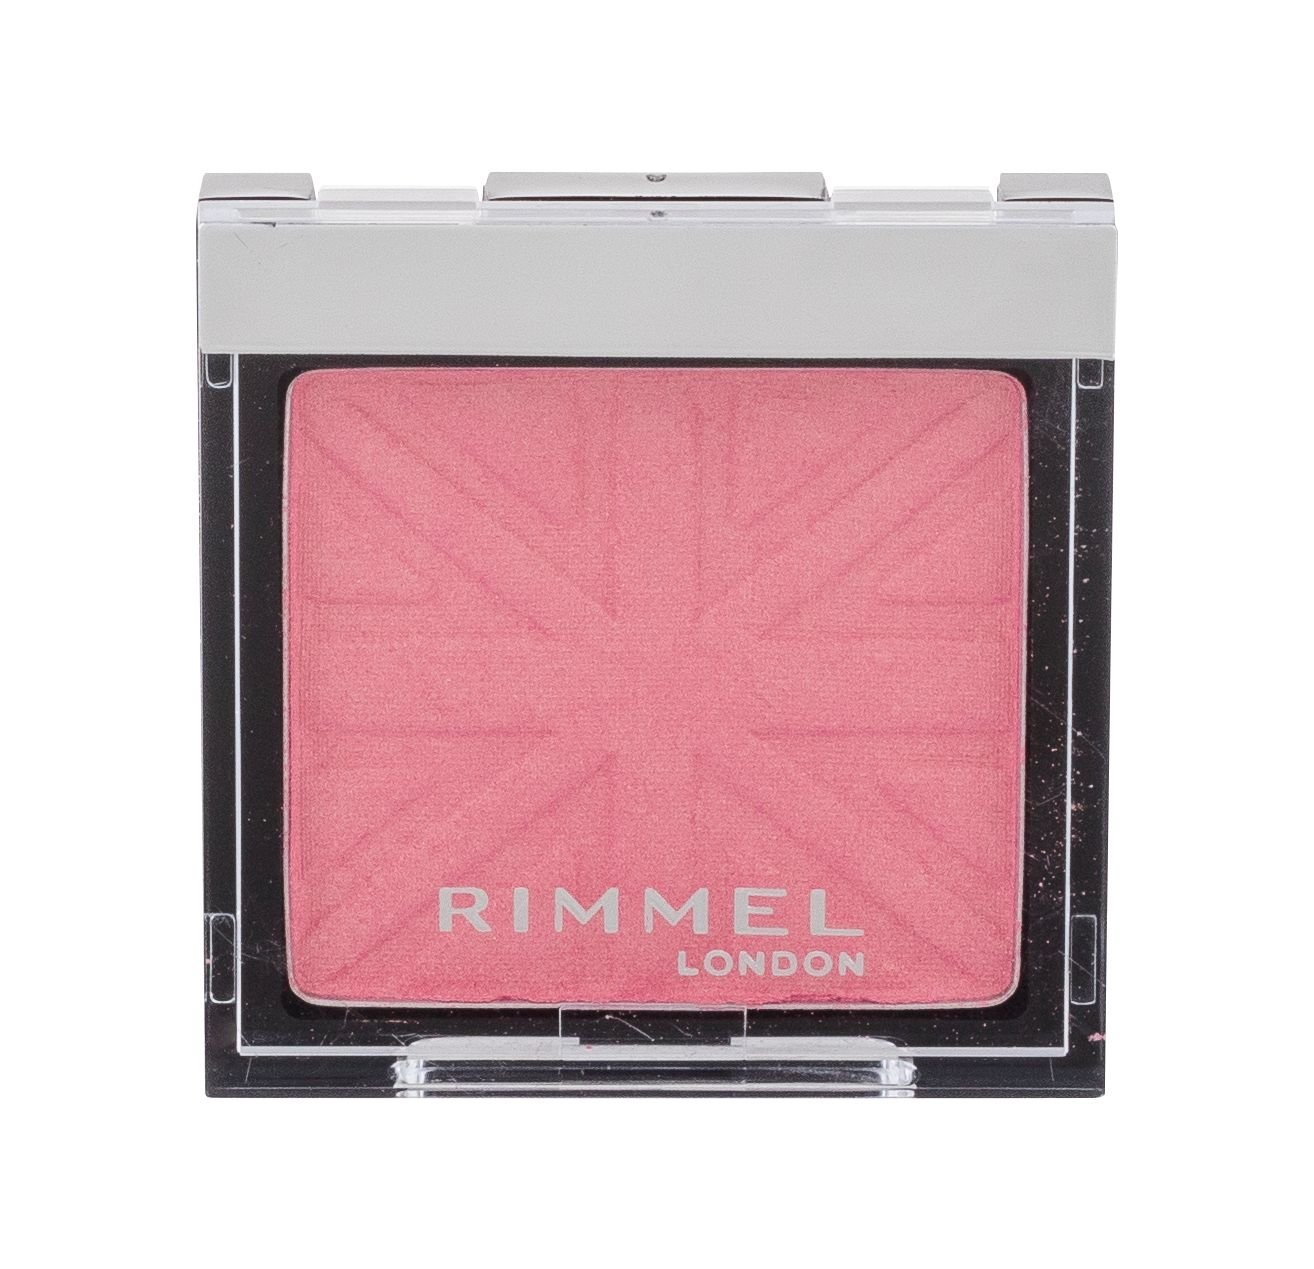 Rimmel London Lasting Finish Blush 4ml 050 Live Pink